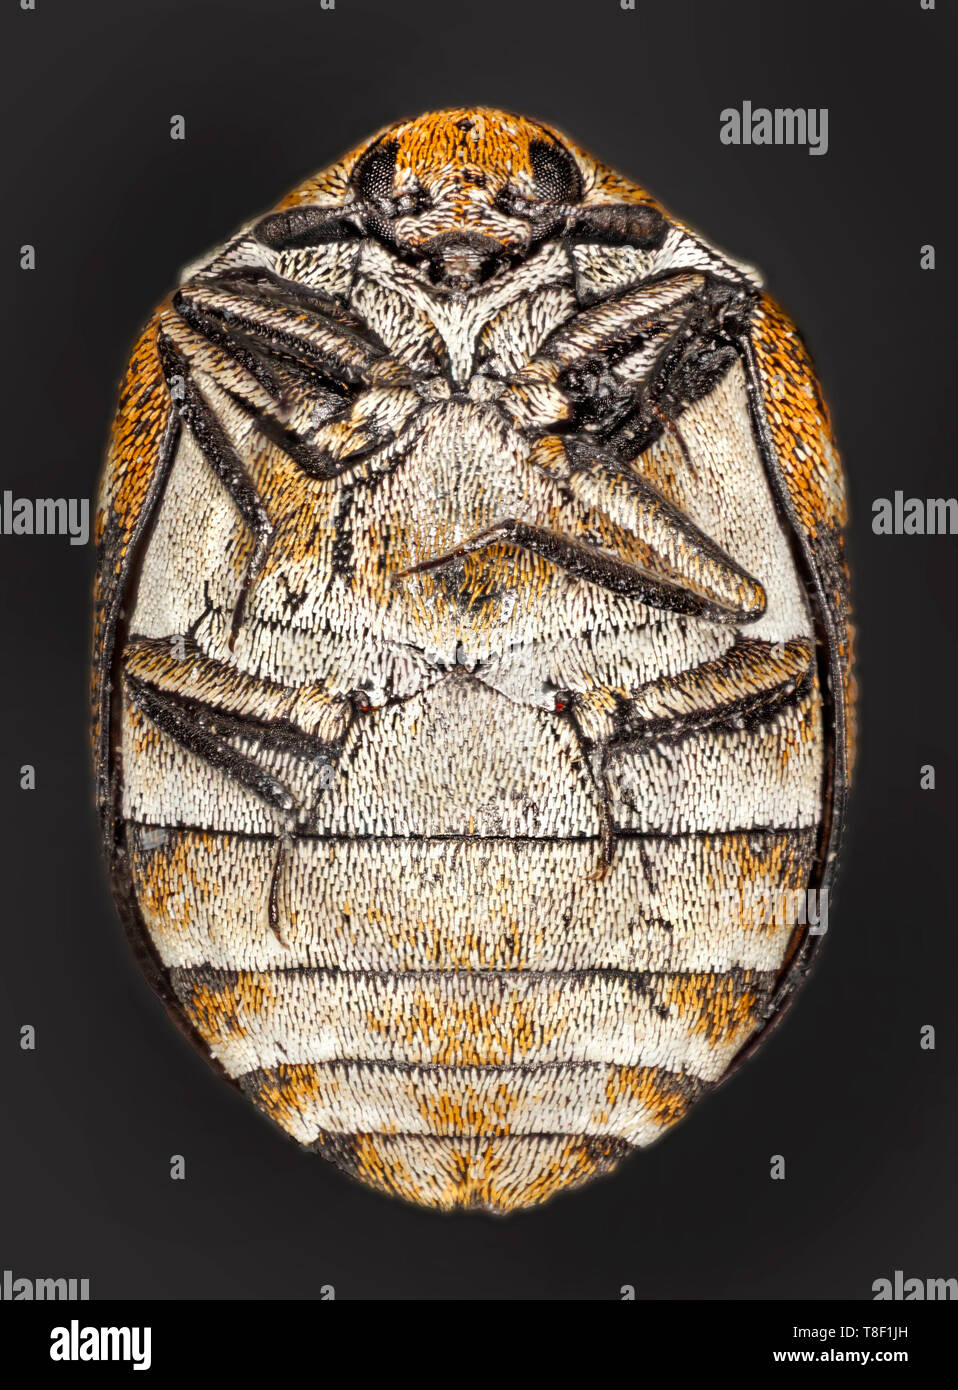 Varied carpet beetle (Anthrenus verbasci) is a 3 mm-long beetle belonging to the family Dermestidae - Stock Image